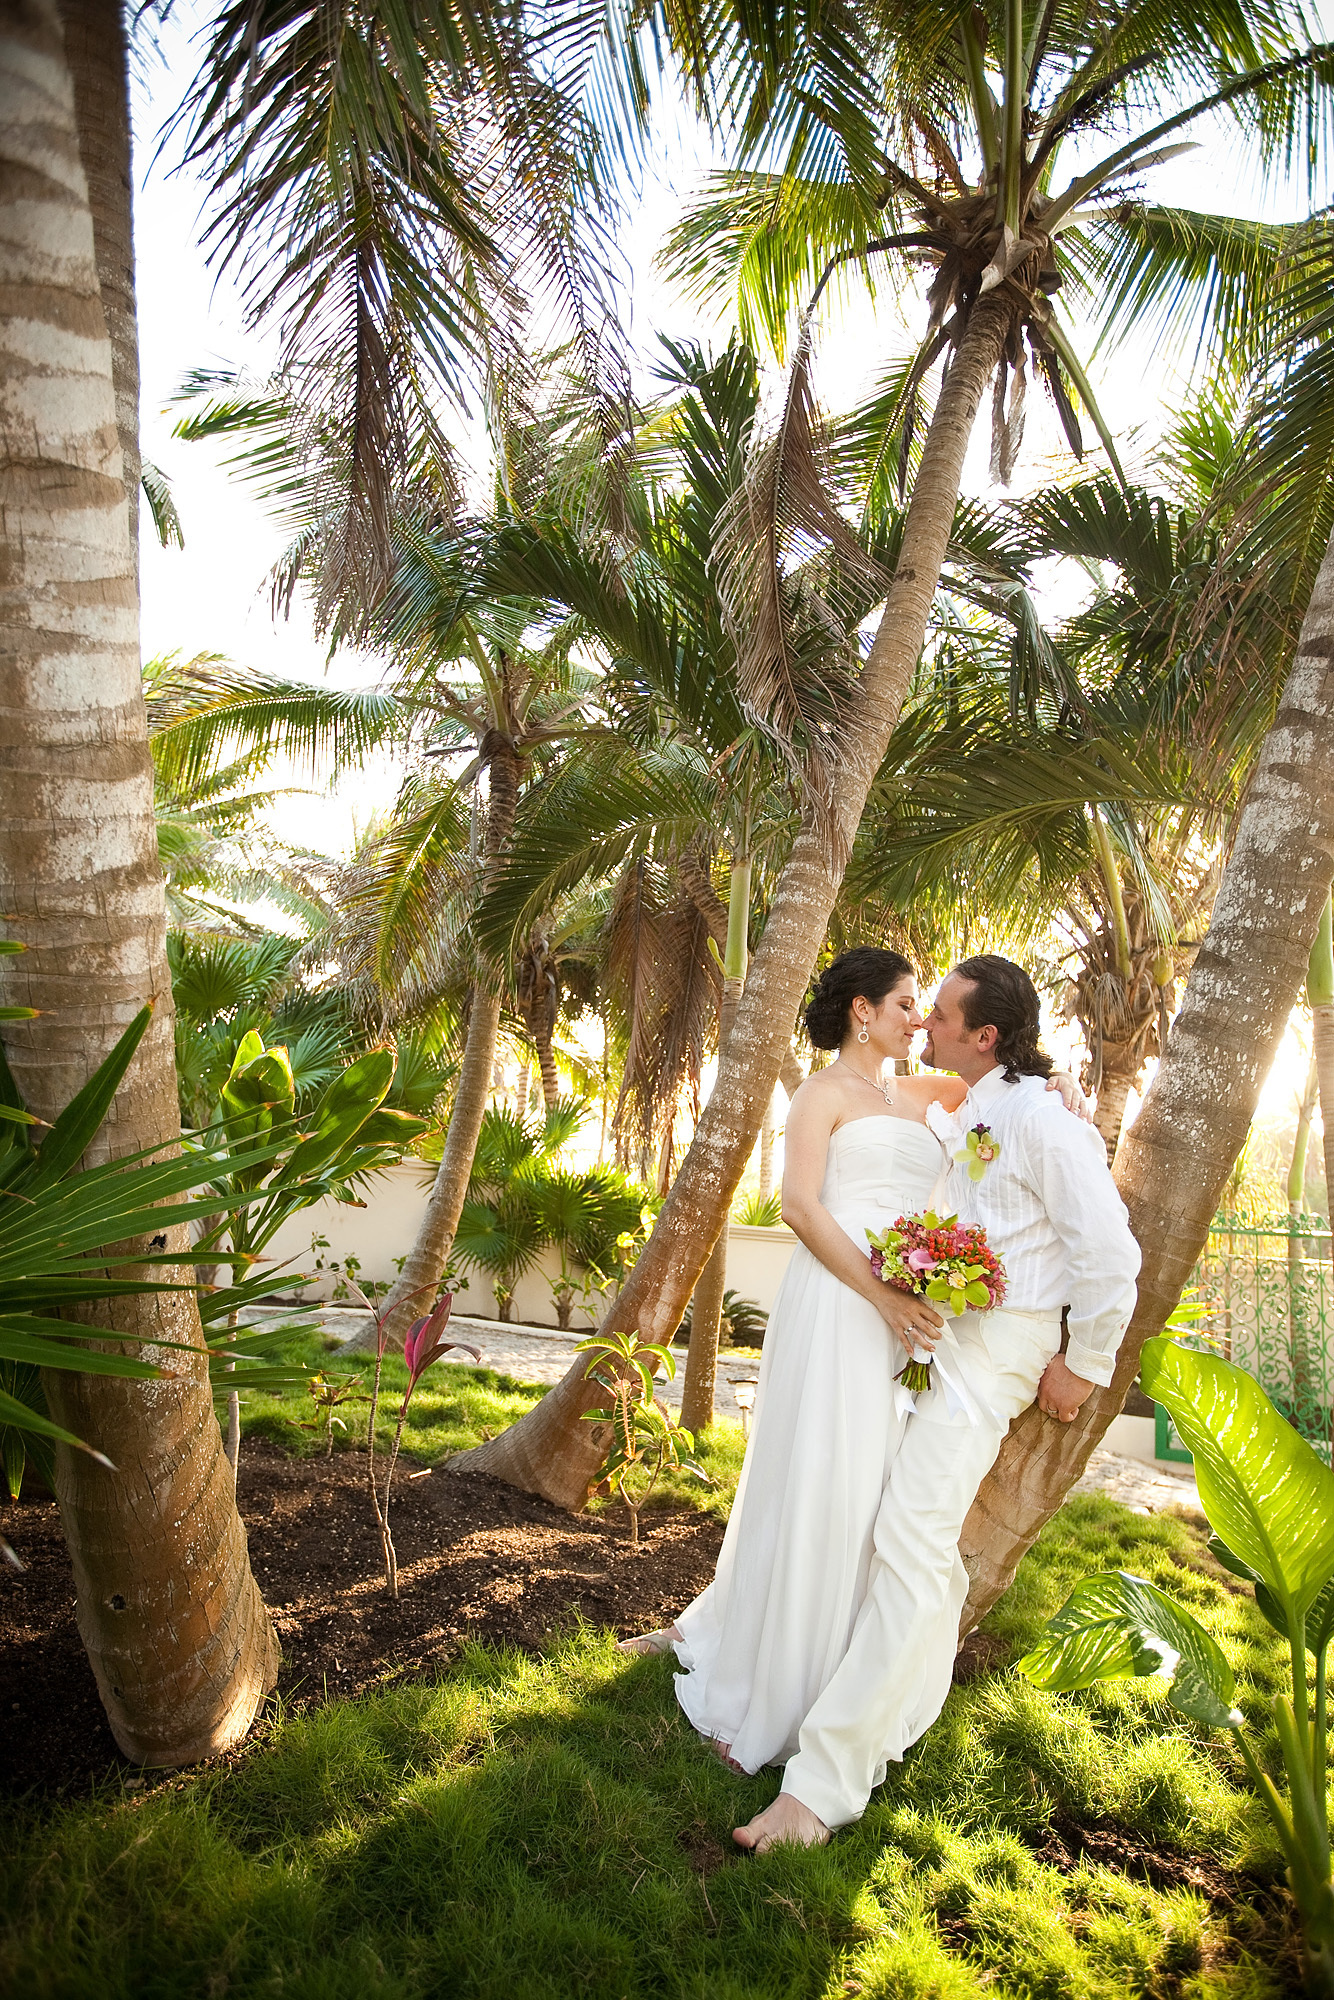 Destinations, Mexico, Beach, Wedding